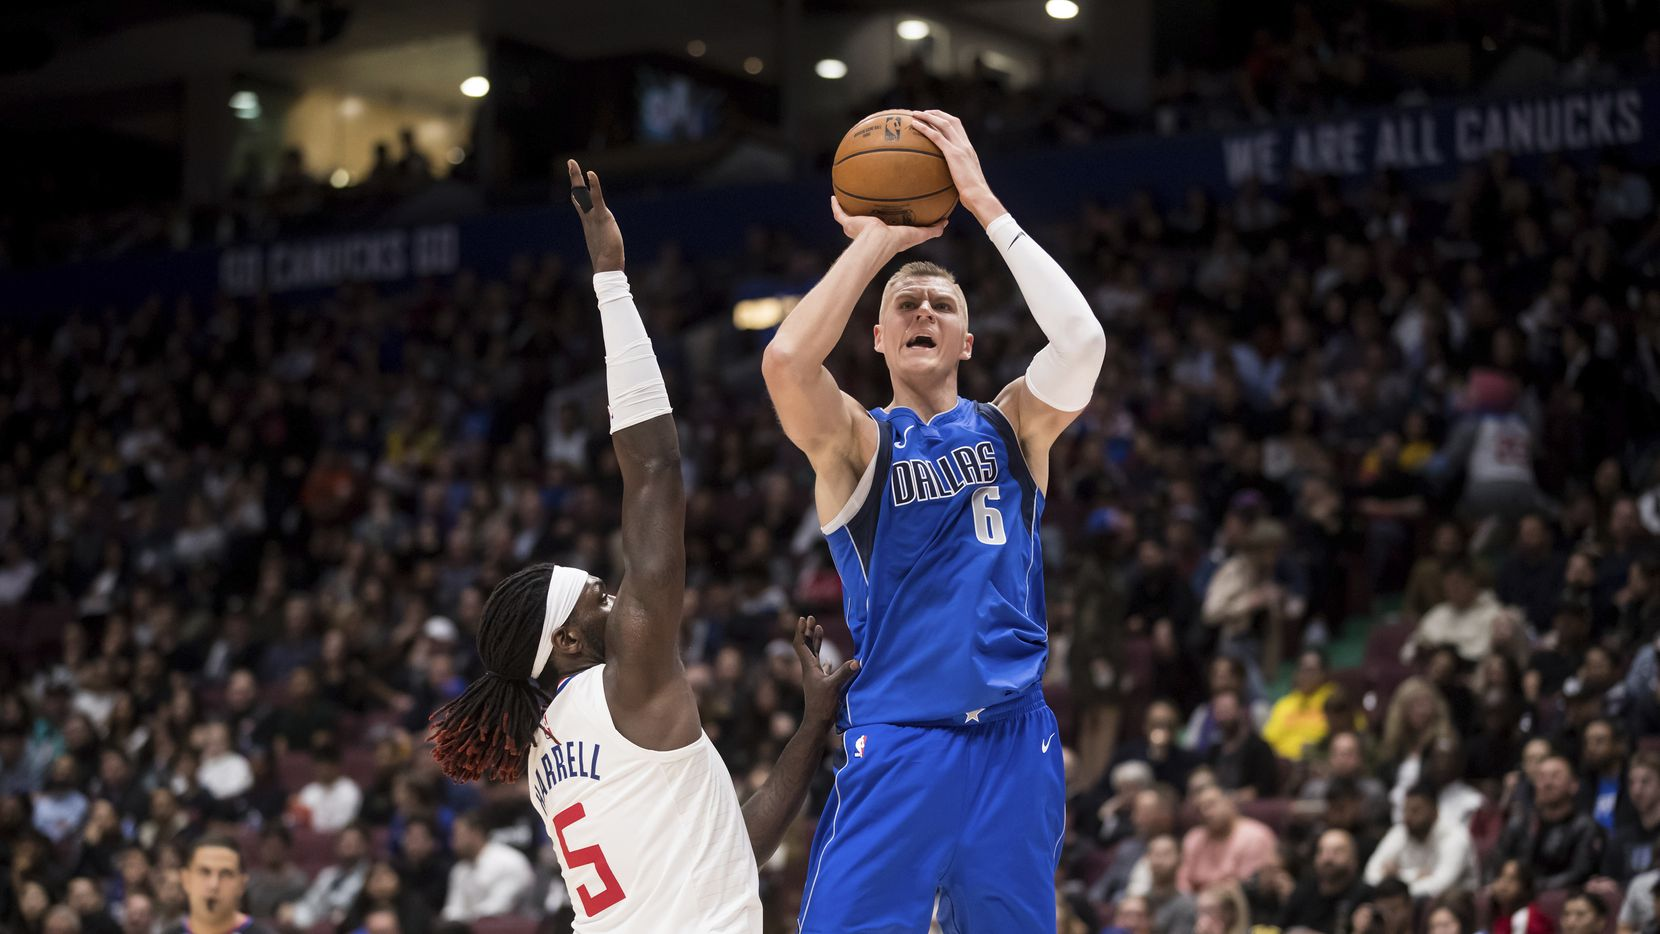 Kristaps Porzingis (6) of the Mavericks shoots over Los Angeles Clippers' Montrezl Harrell (5) during the second half of an NBA preseason basketball game Thursday, Oct. 17, 2019, in Vancouver, British Columbia.